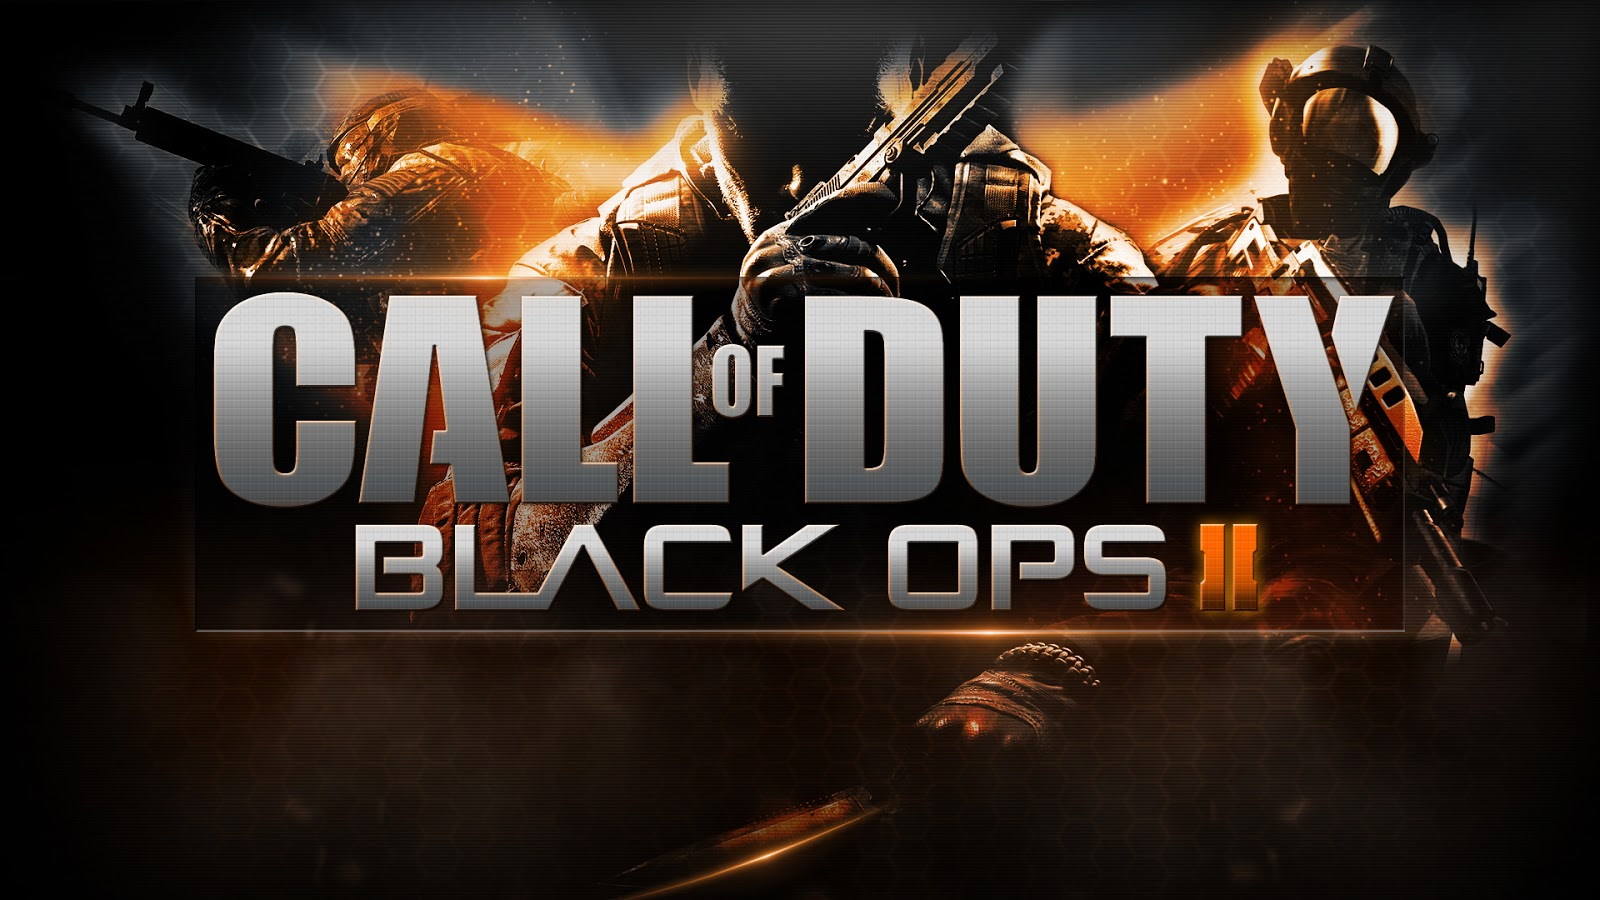 wallpapers call of duty black ops 2 zombie full hd todo. Black Bedroom Furniture Sets. Home Design Ideas